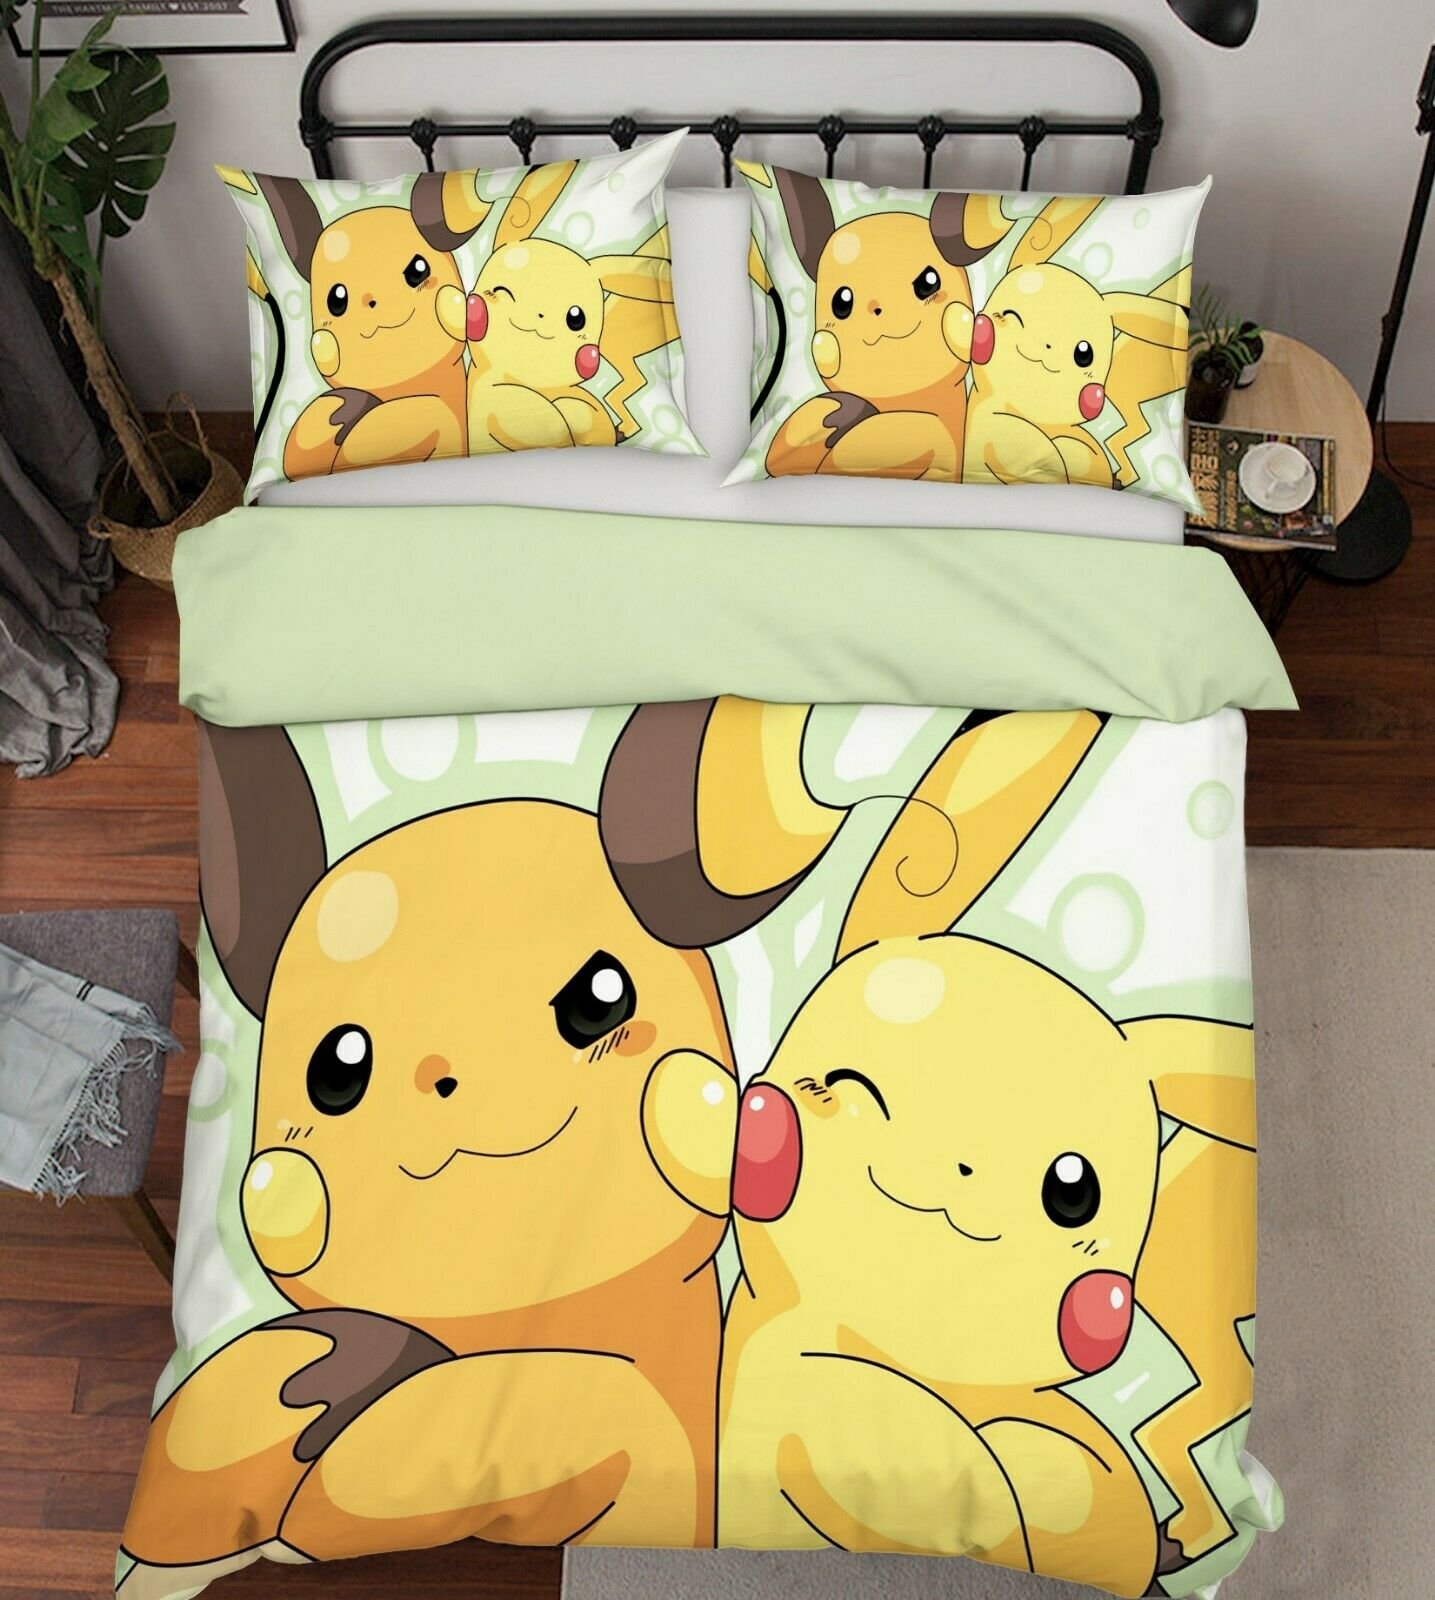 3D Pokemon 916 Japan Anime Bed Pillowcases Quilt Duvet Cover Single AU